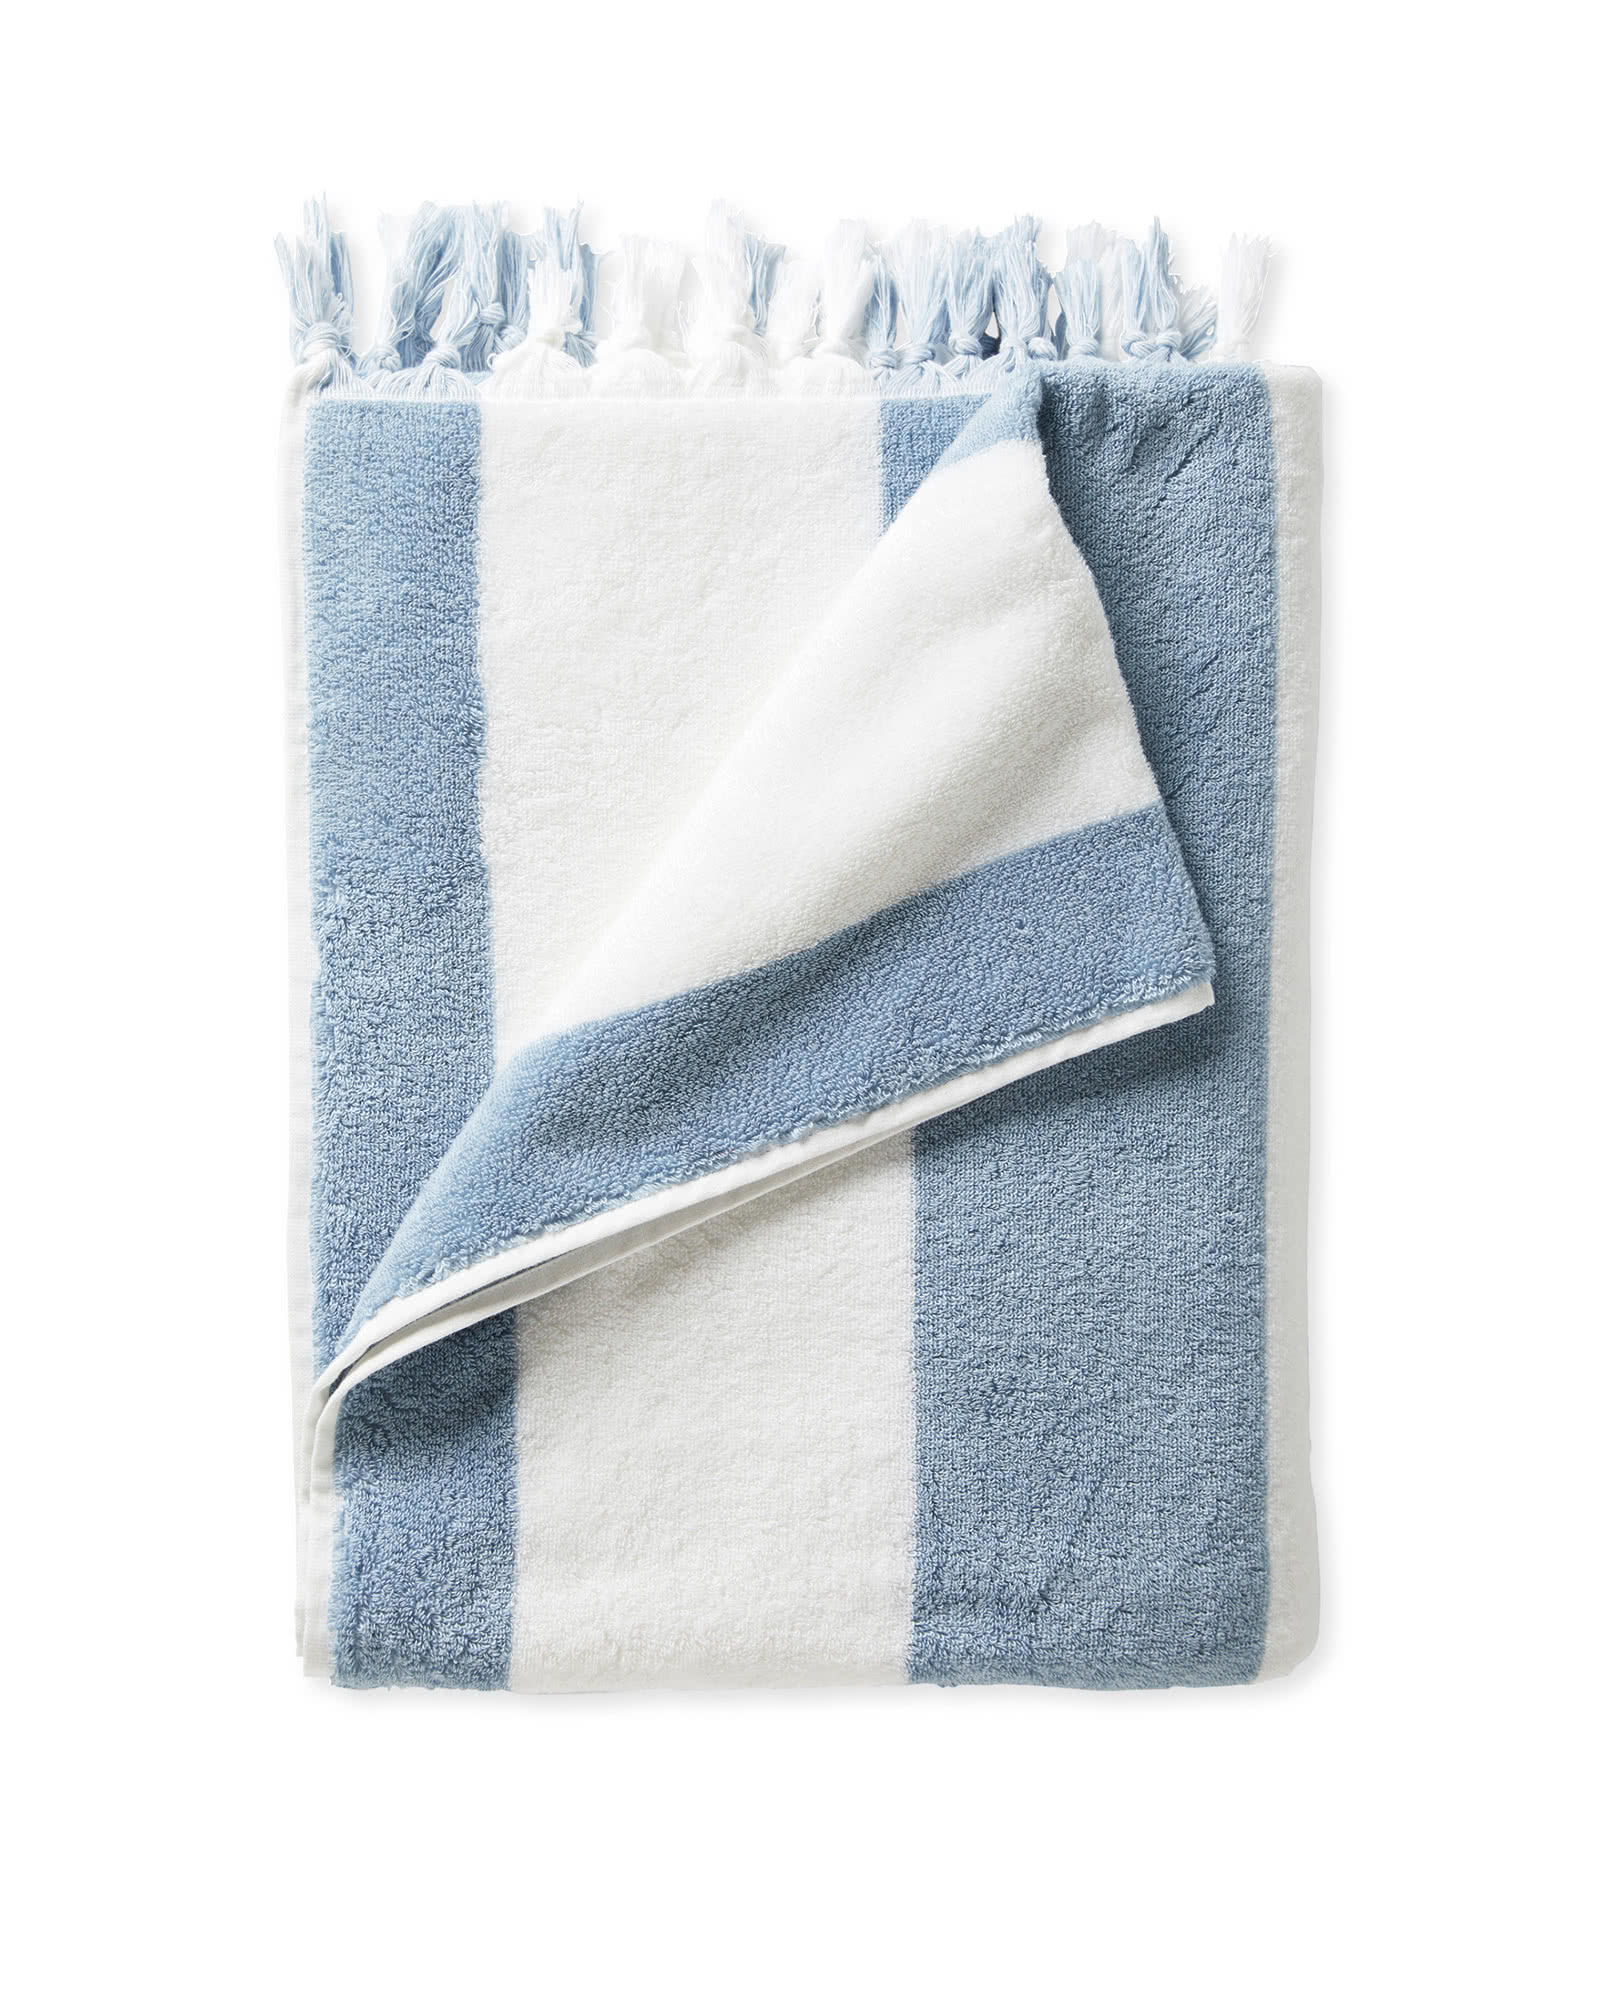 Mallorca Beach Towel, Coastal Blue